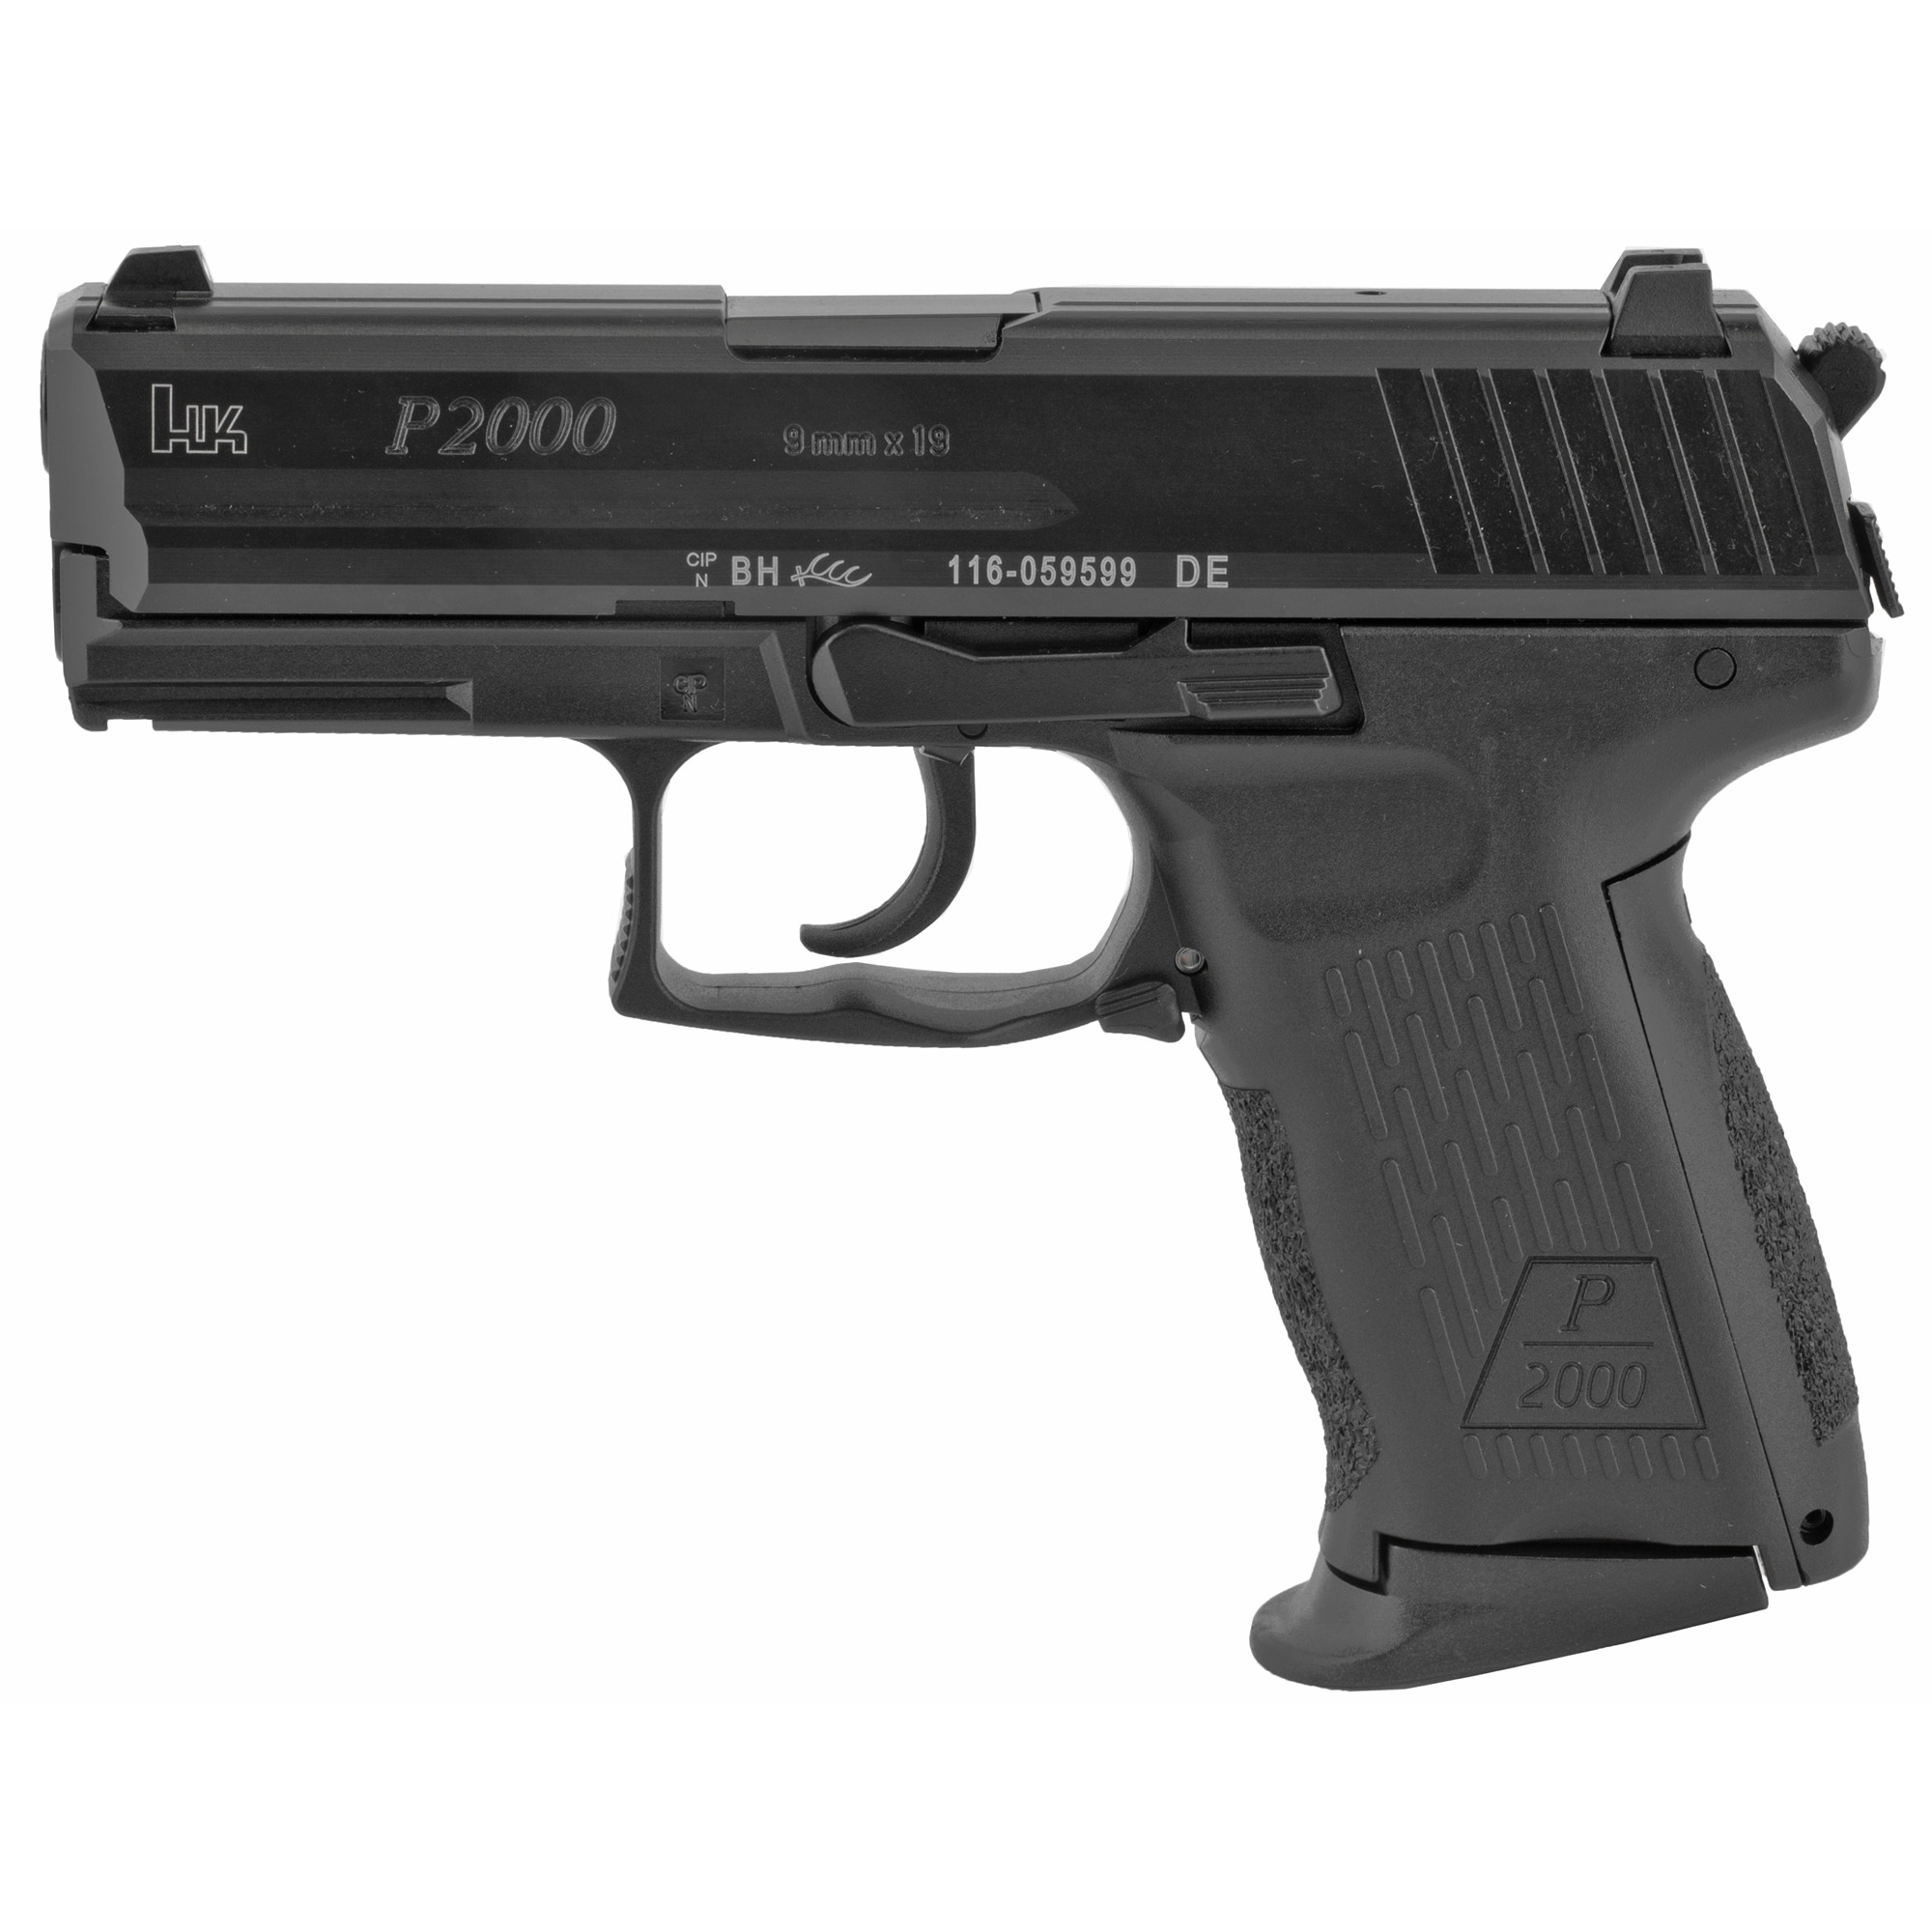 """The first of the many recent additions to the Heckler & Koch handgun line"""" the P2000 and incorporate features of the successful HK USP Compact pistol with the latest innovations of HK engineers. A refinement of a design created for several European police agencies"""" the P2000 is available with a traditional double-action/single-action trigger mode or the LEM/CDA (Law Enforcement Modification"""" also known as Combat Defense Action) trigger system first introduced in 2001 on the USP Compact """"LEM"""" model."""